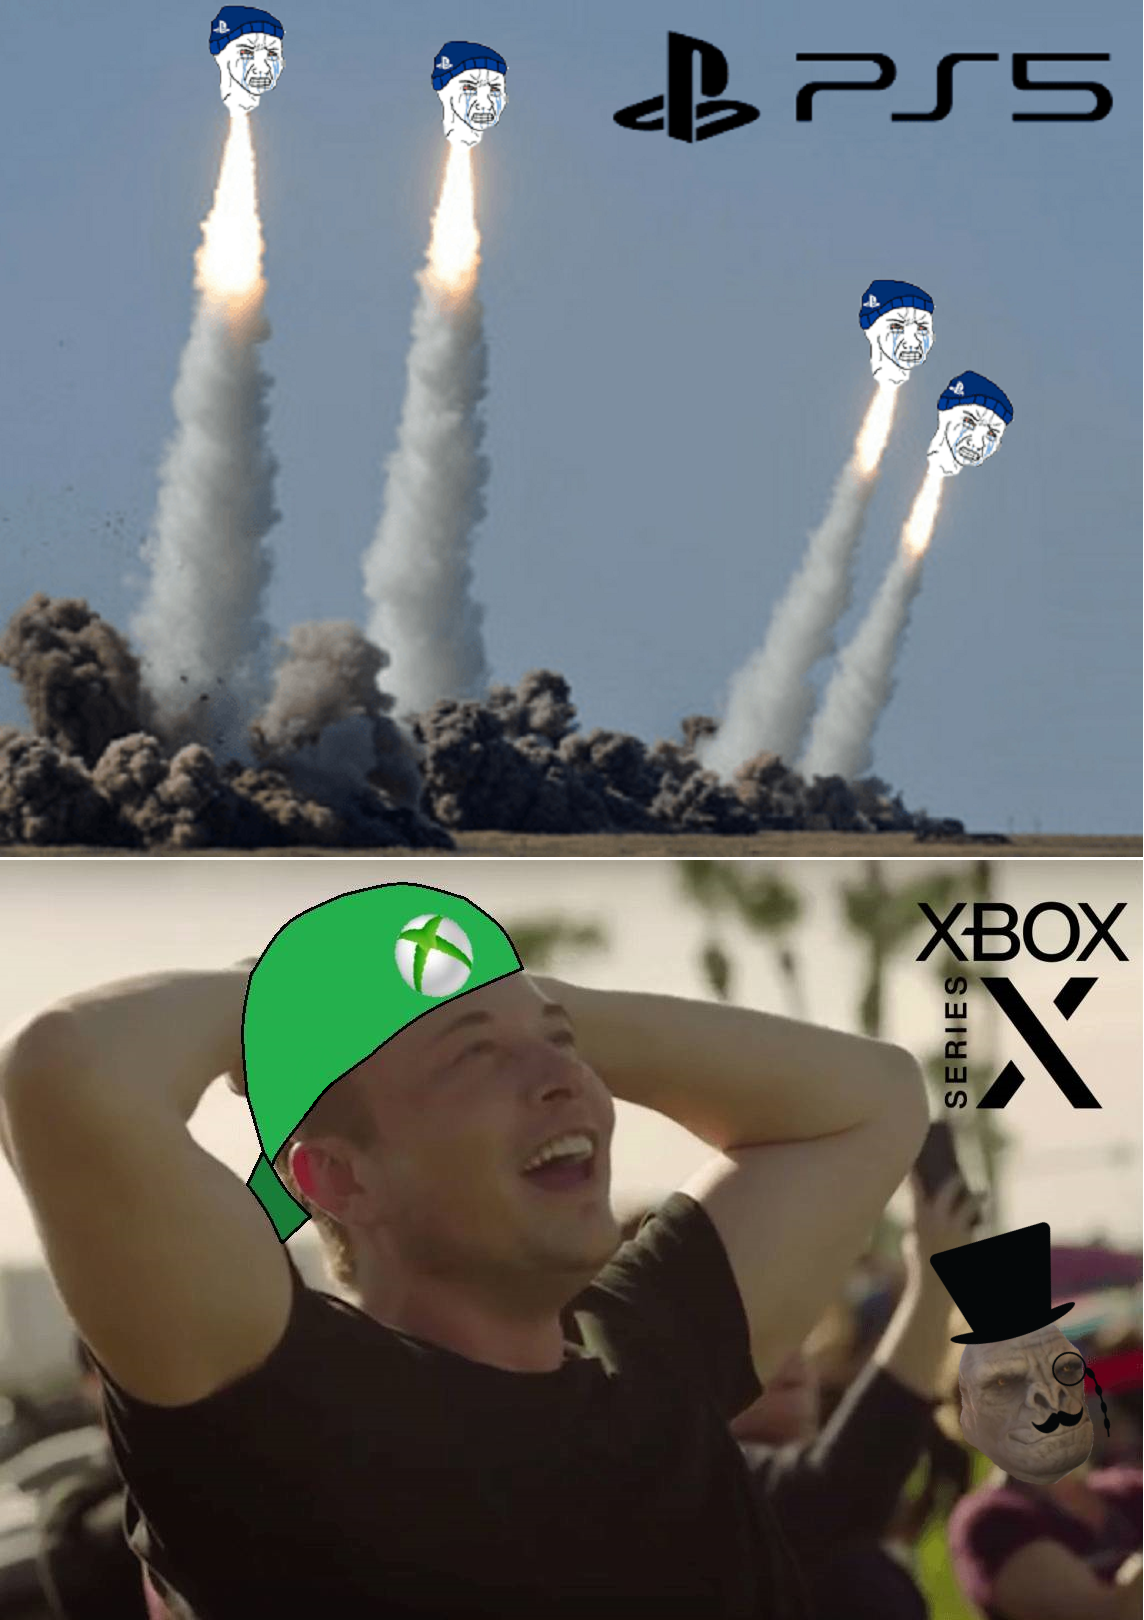 The biggest launch in history   Console Wars / Console Debates   Know Your  Meme